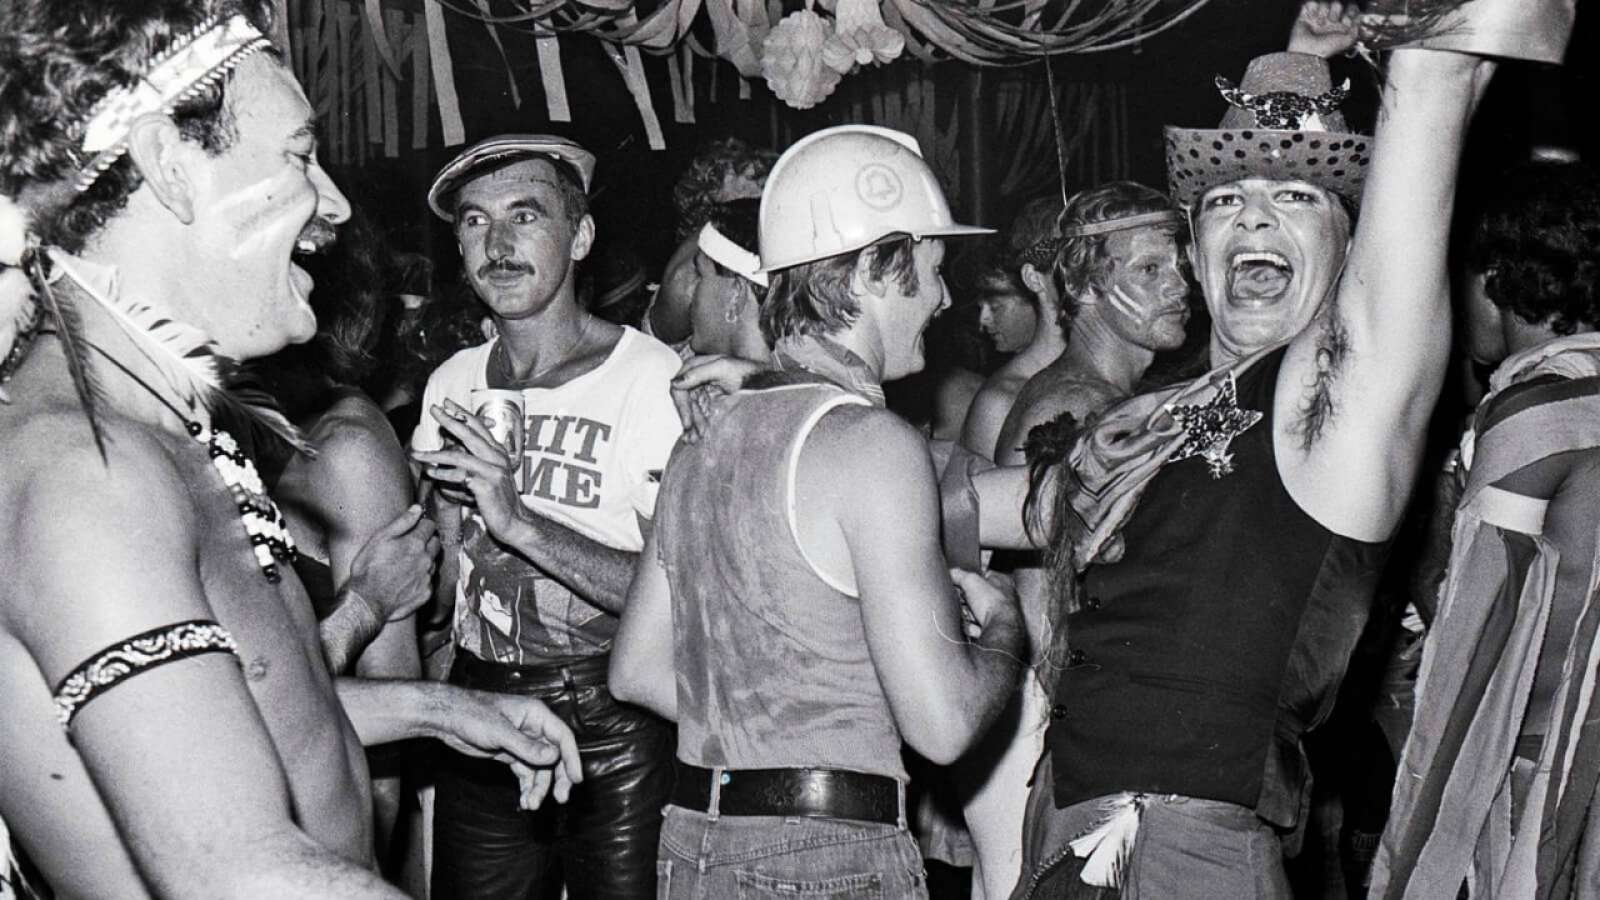 PARTY (verb) - Frank Elgar and Robert Burton's New Year Eve Party, 1979. Image: William Yang.